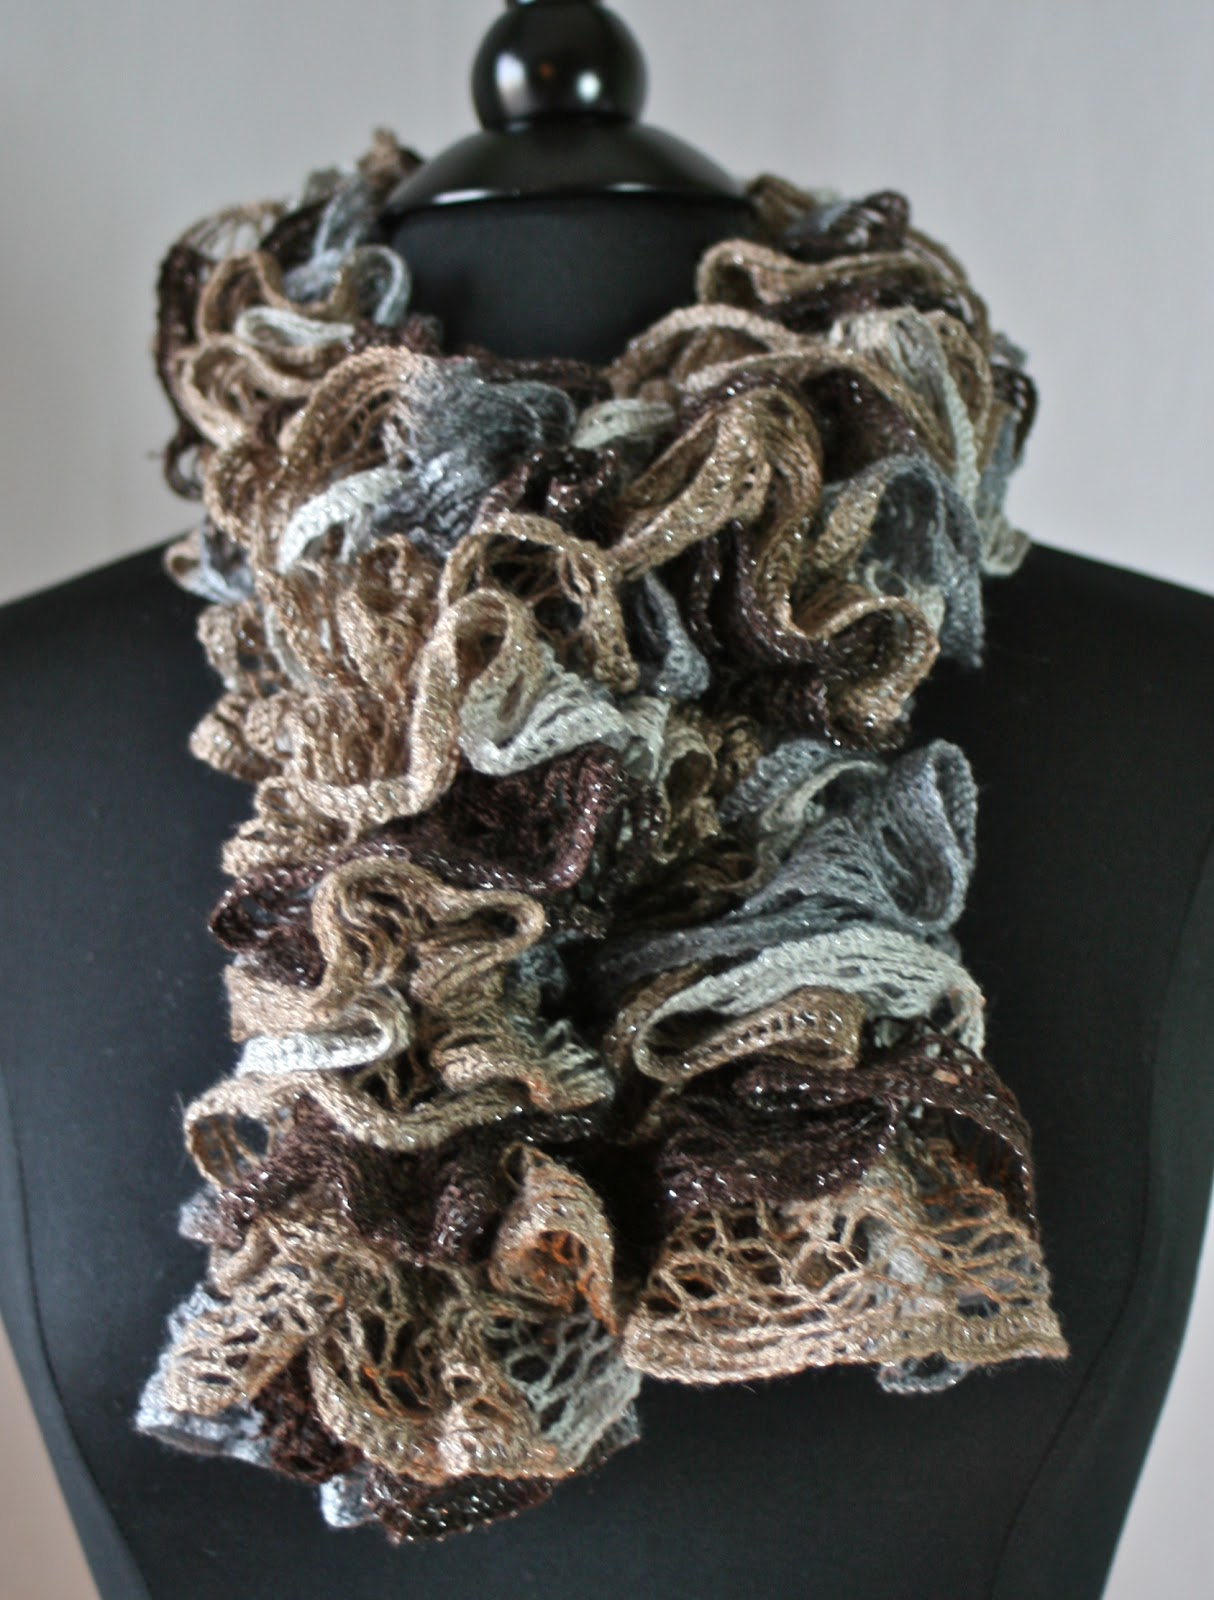 Crochet Vs Knit Scarf : Knots-n-Knits: Crocheted Ruffled Scarves - Sashay vs. Starbella